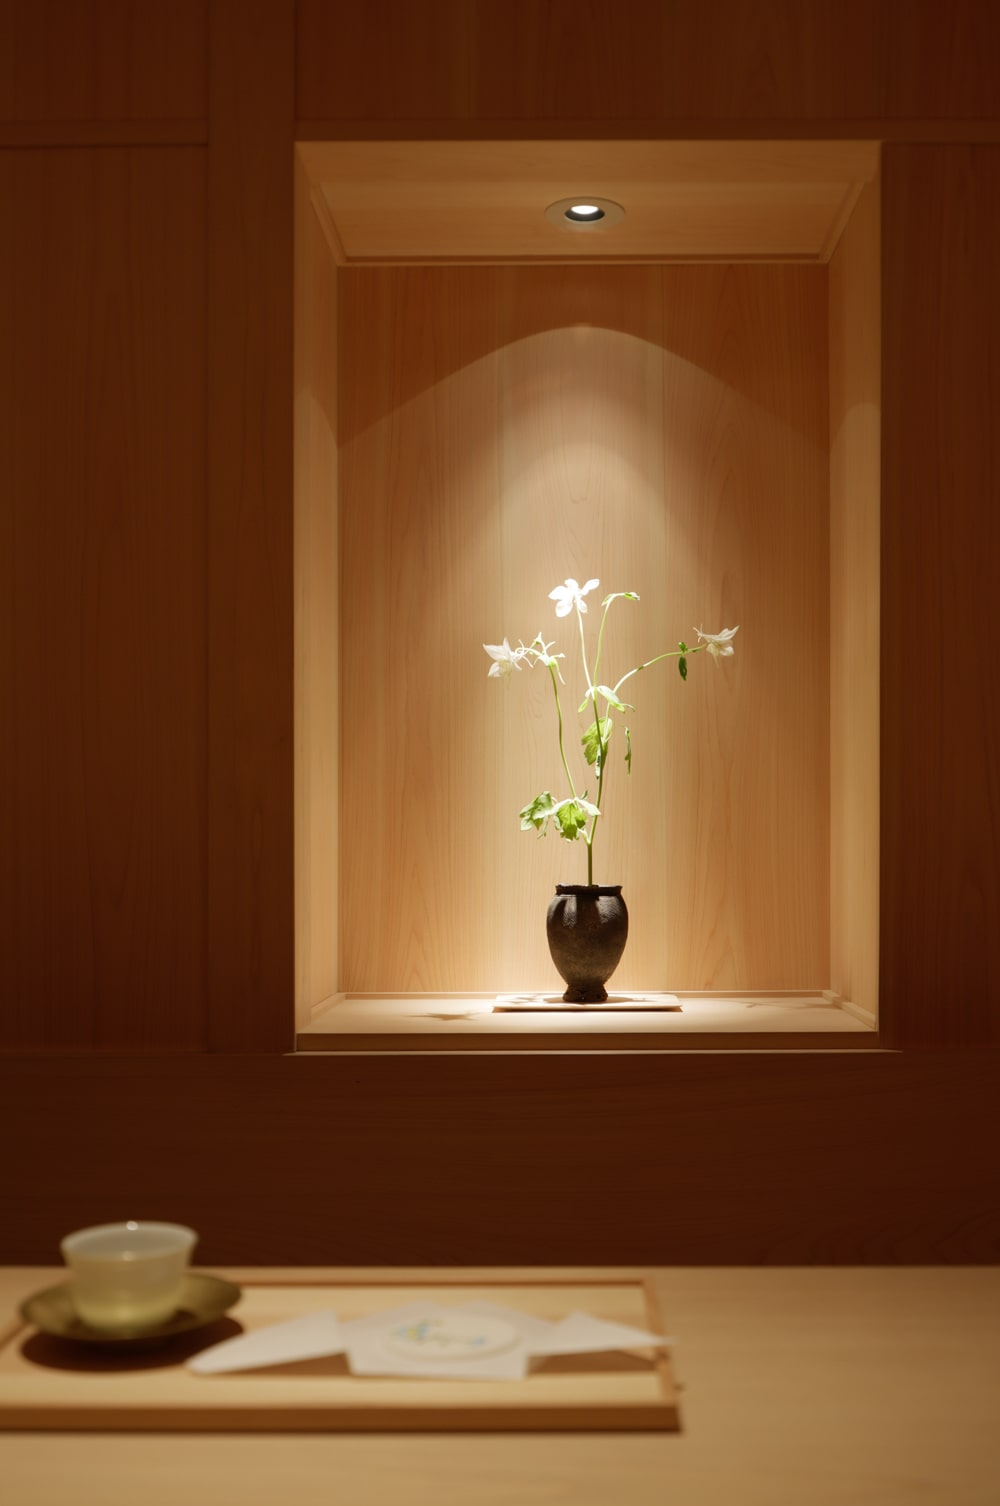 This is an alcove decoration fitted with a flower vase above the bench of the waiting customers.